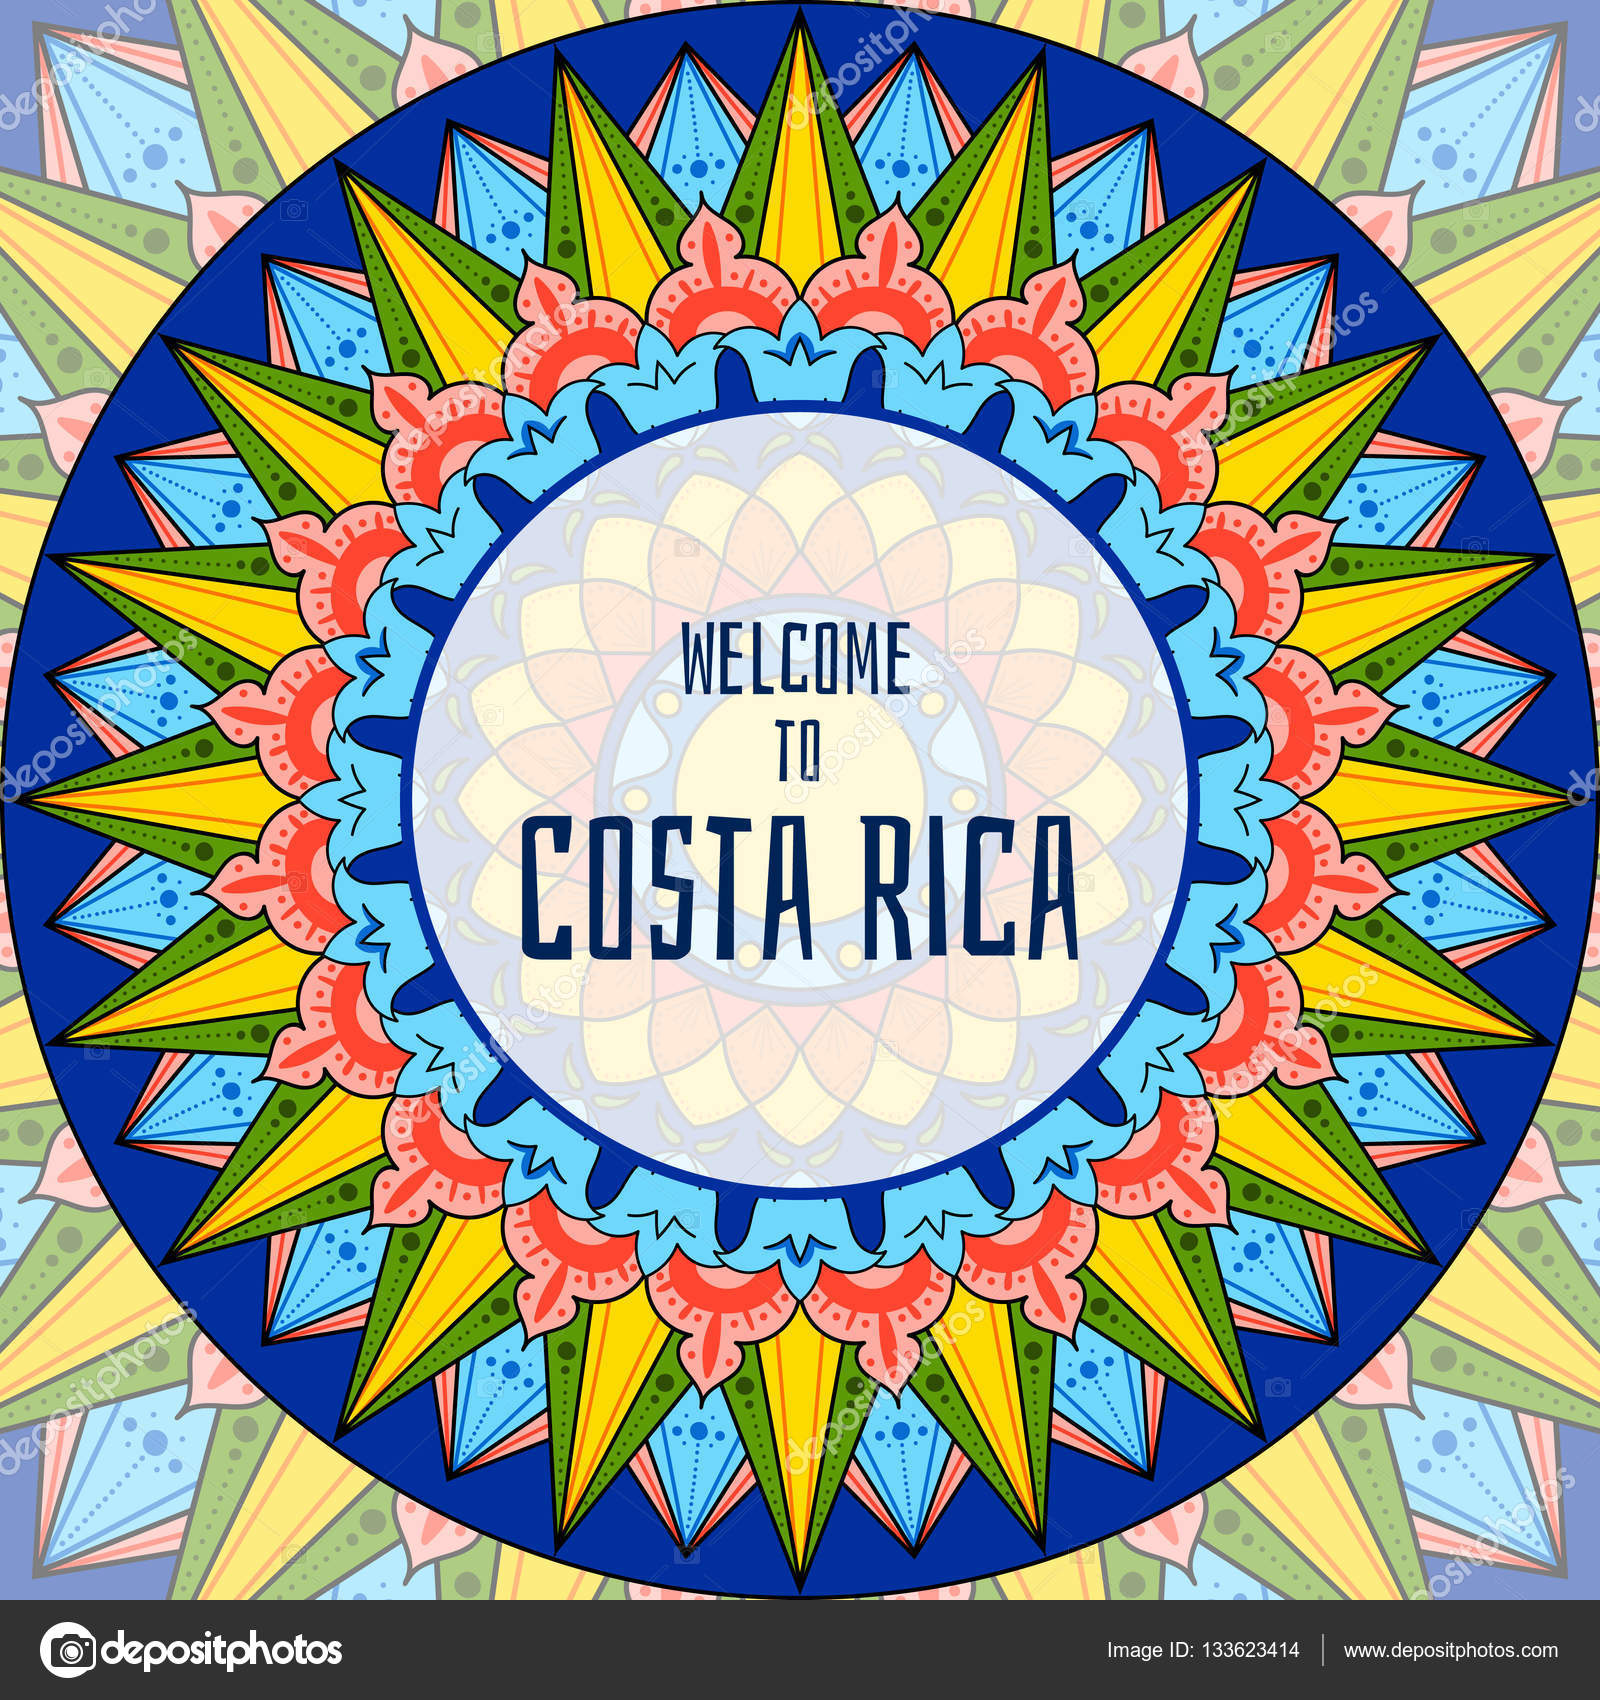 Welcome To Costa Rica Illustration Vector Decorated Coffee Carreta